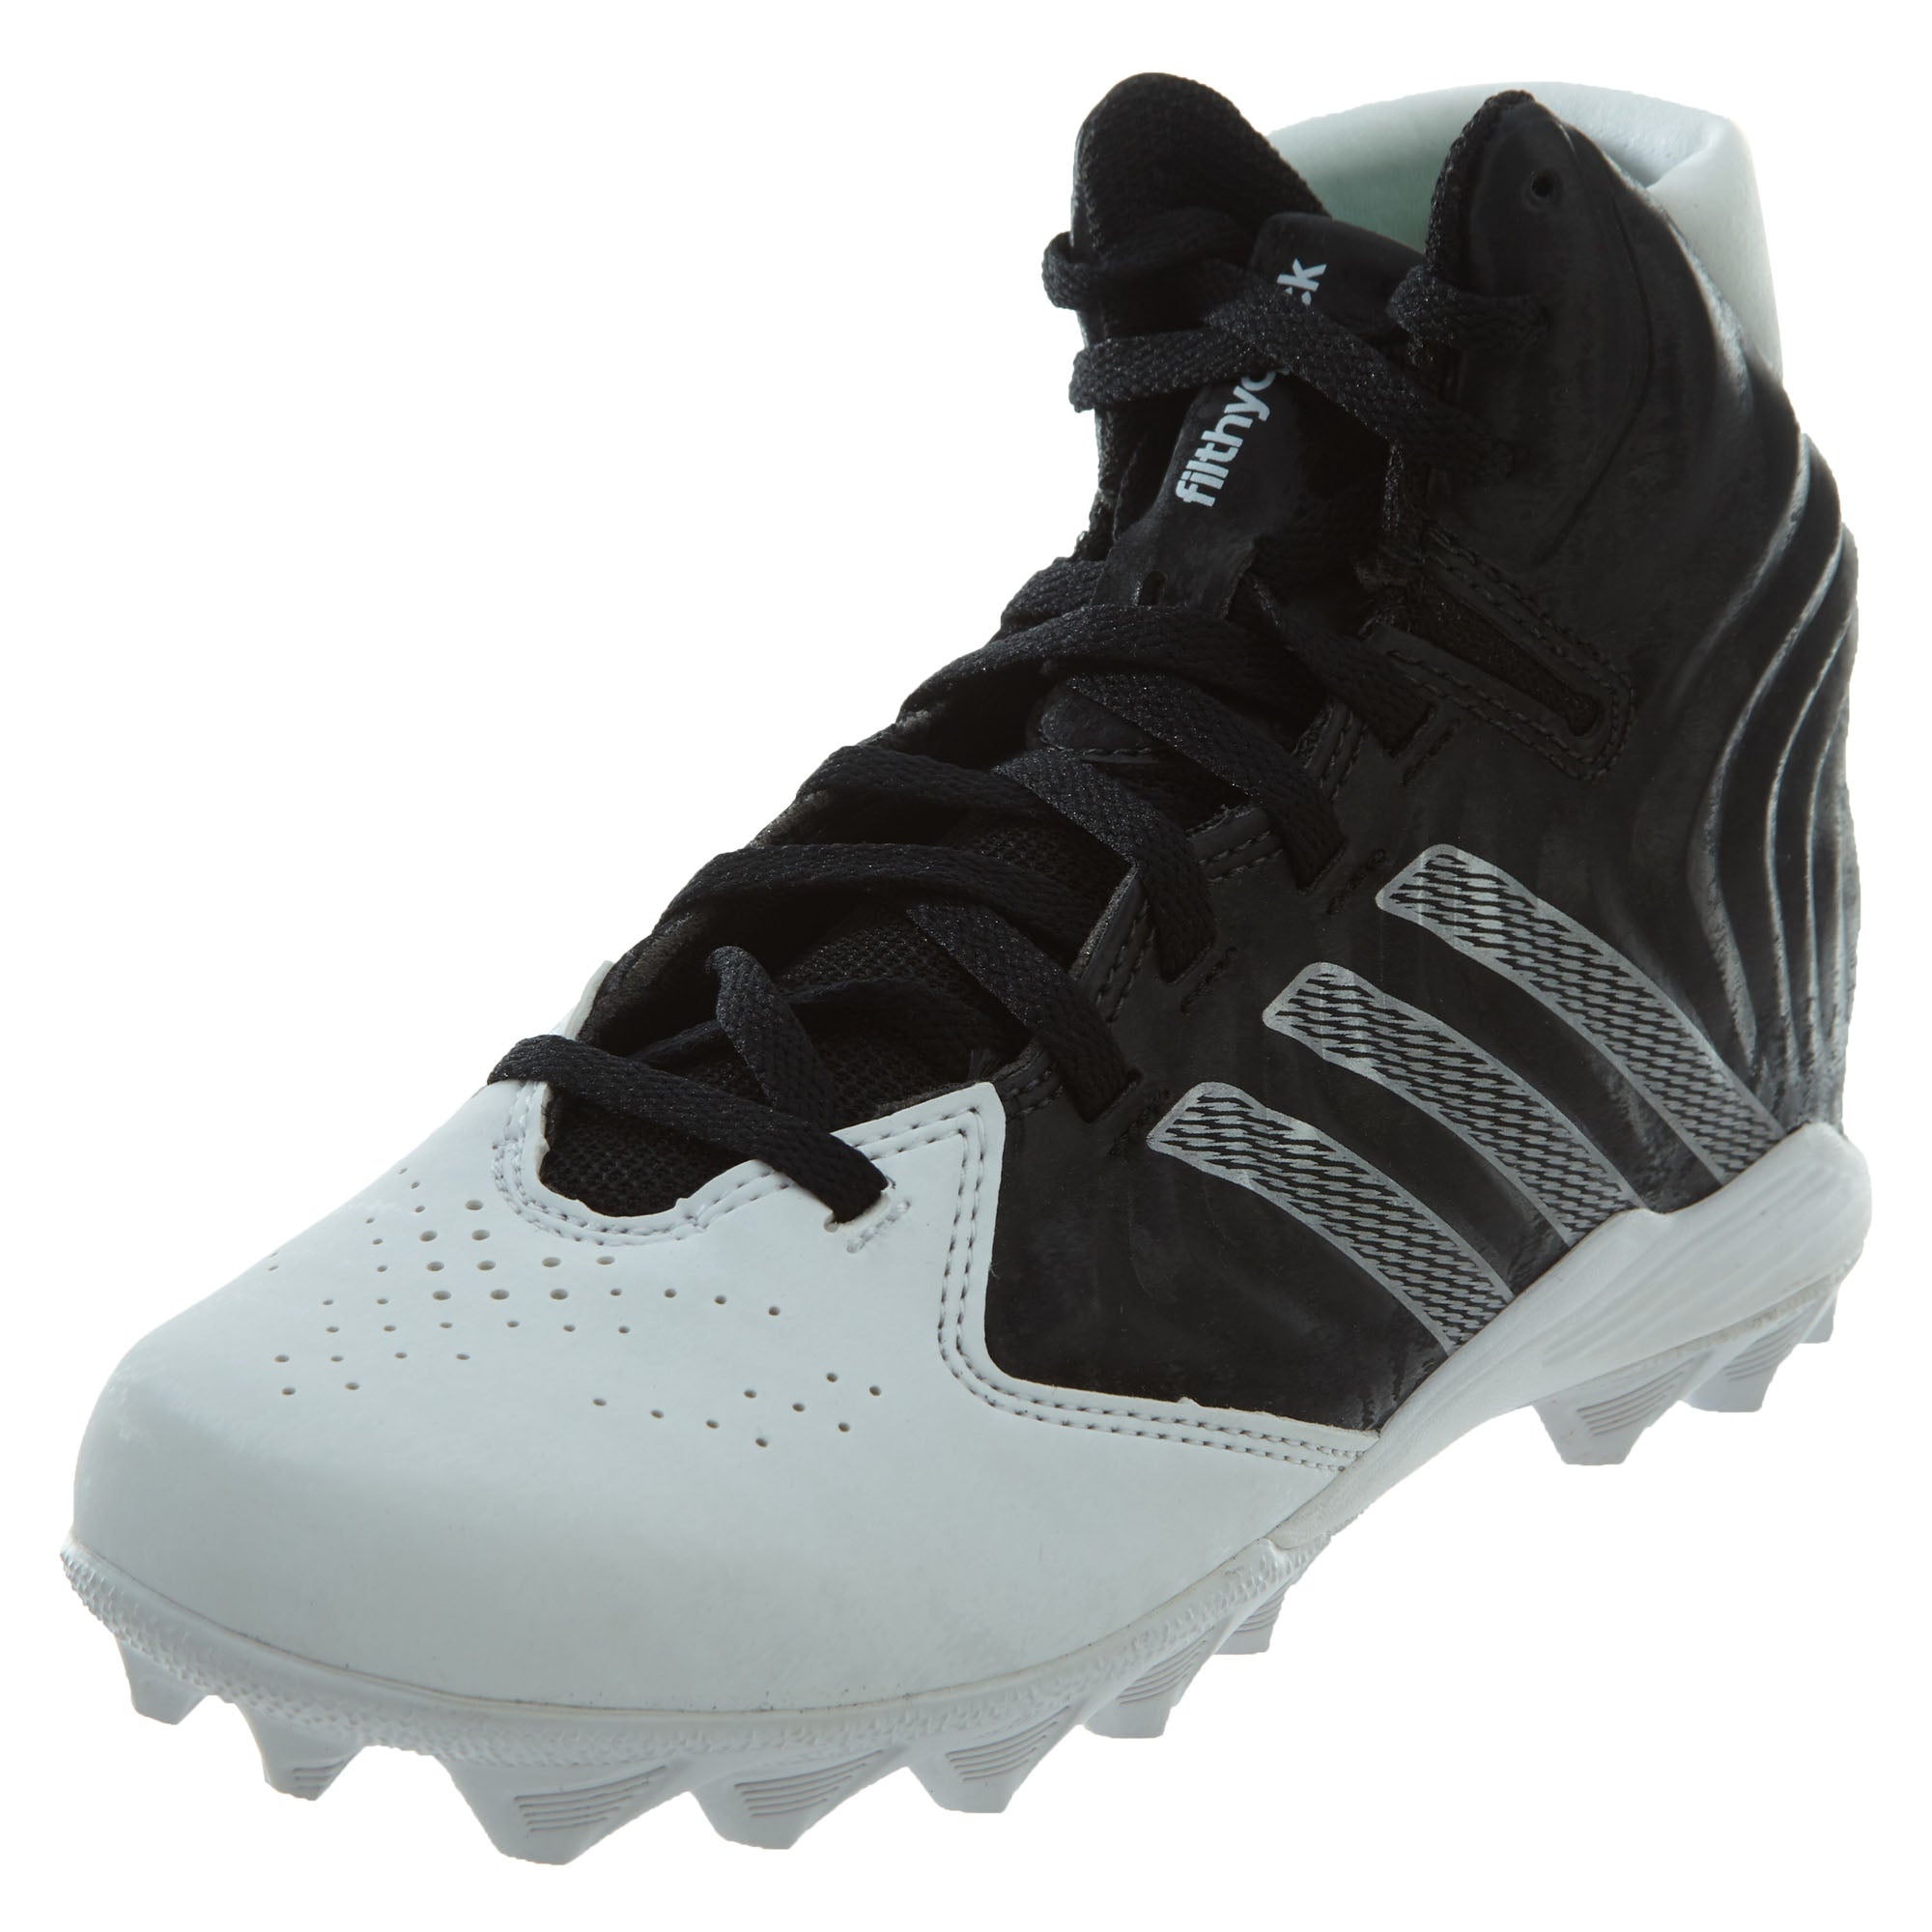 Adidas Filthyquick Md J Little Kids Style : G98768